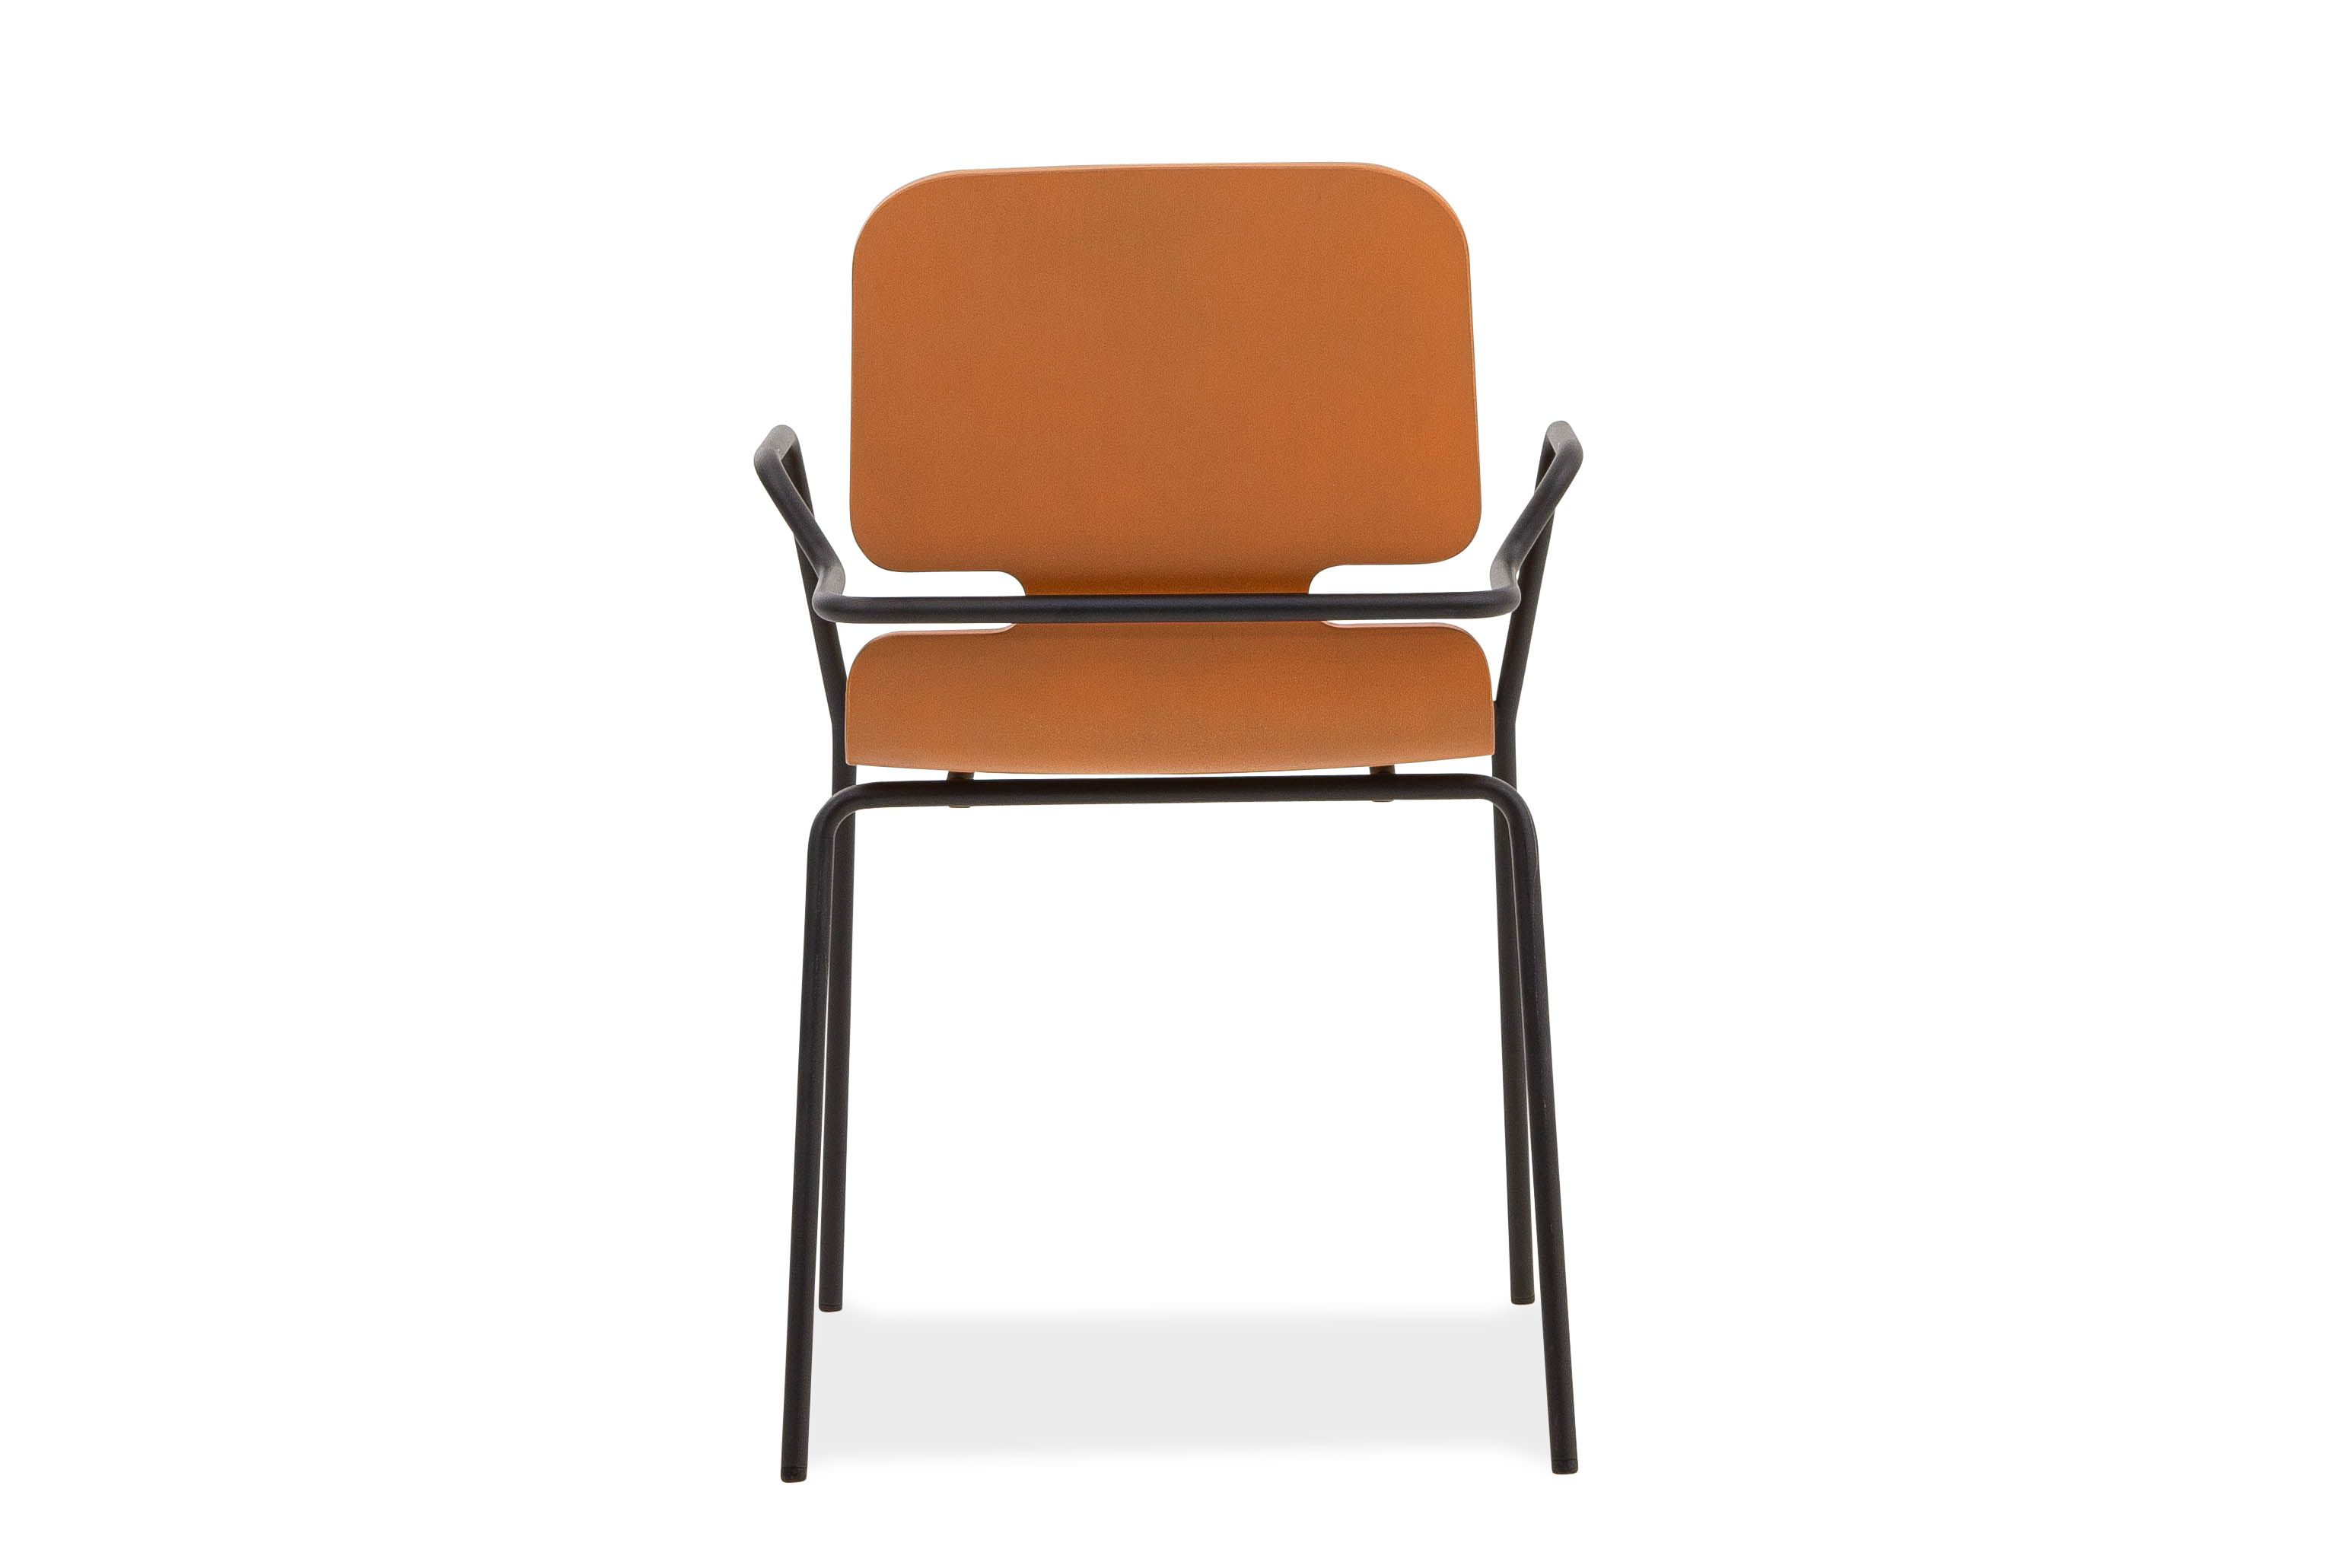 The Ohio Chair That Is Designed By Cebra Architecture Is An All Round Chair Which Combines Feminine Curves With Straight Masculine Lines In A Graphic Sculptur